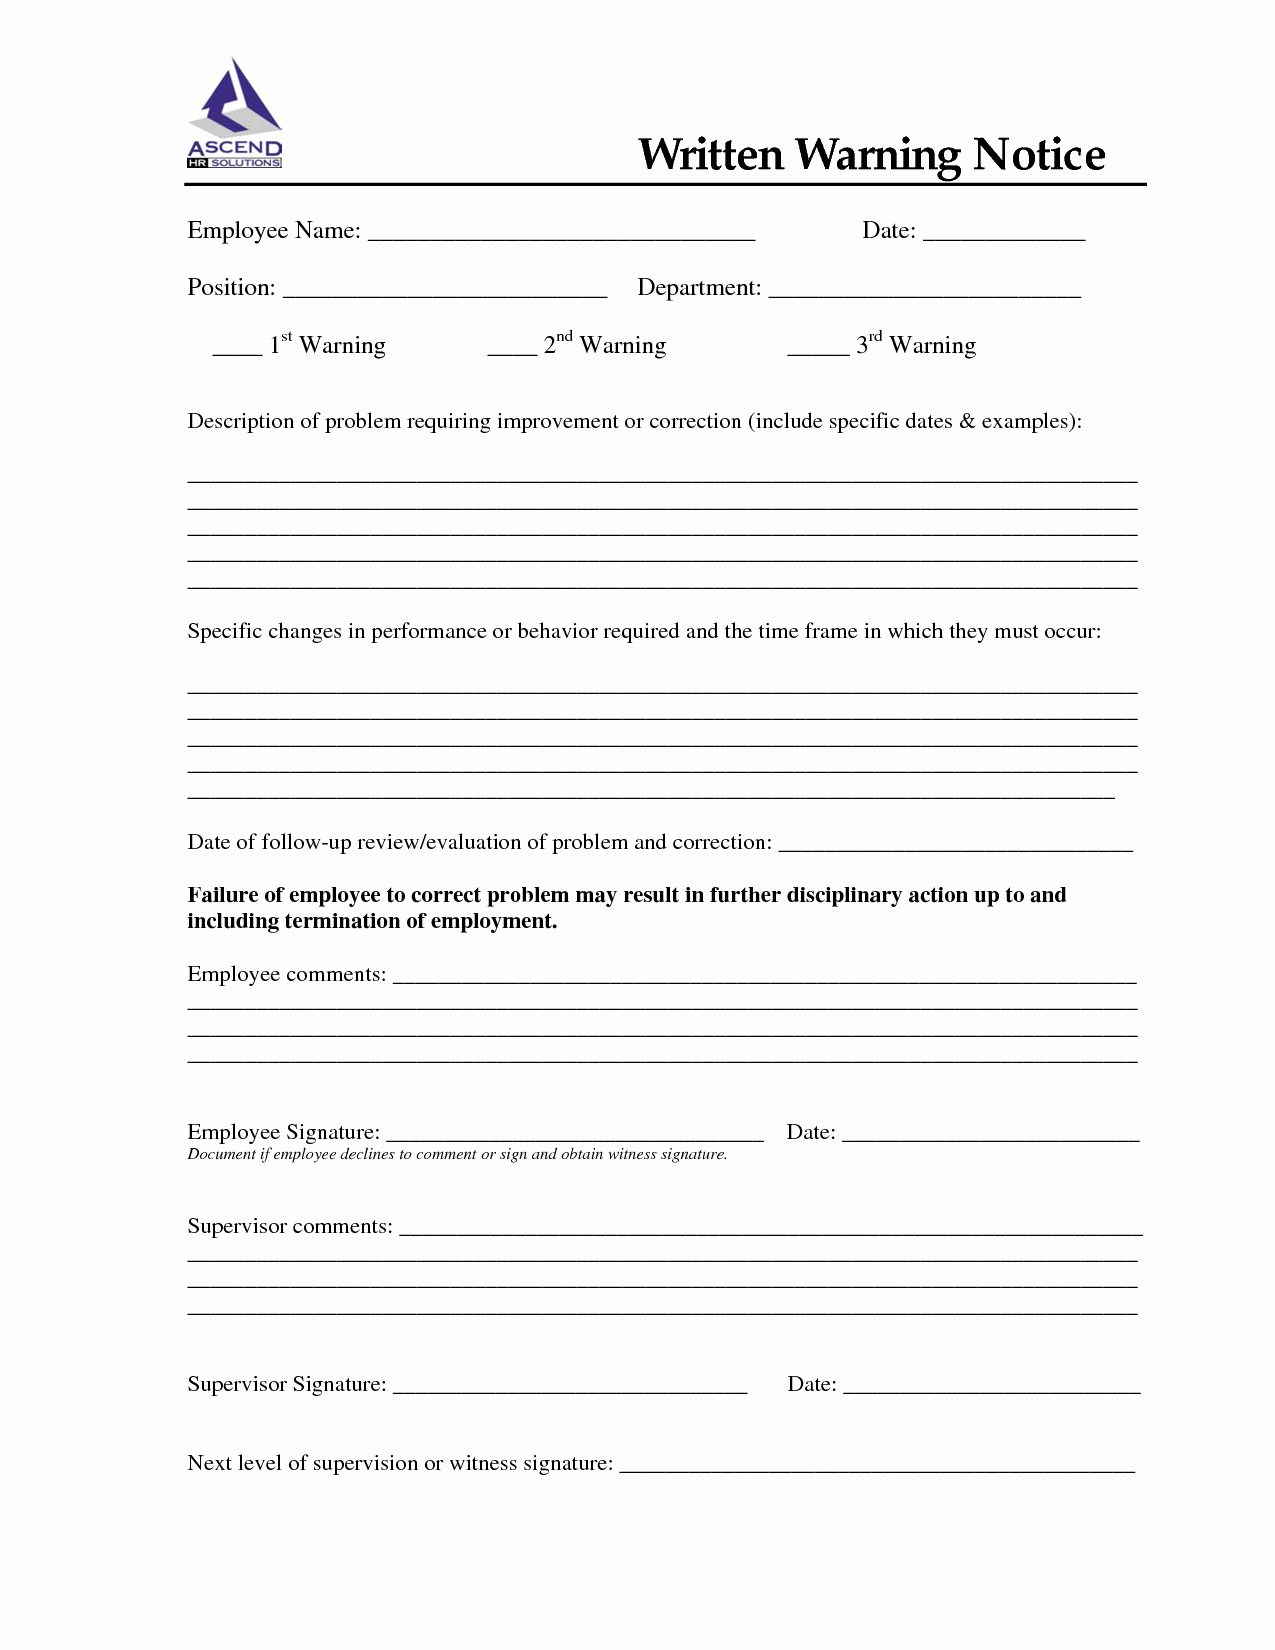 Employee Written Warning Template Elegant Written Warning Template